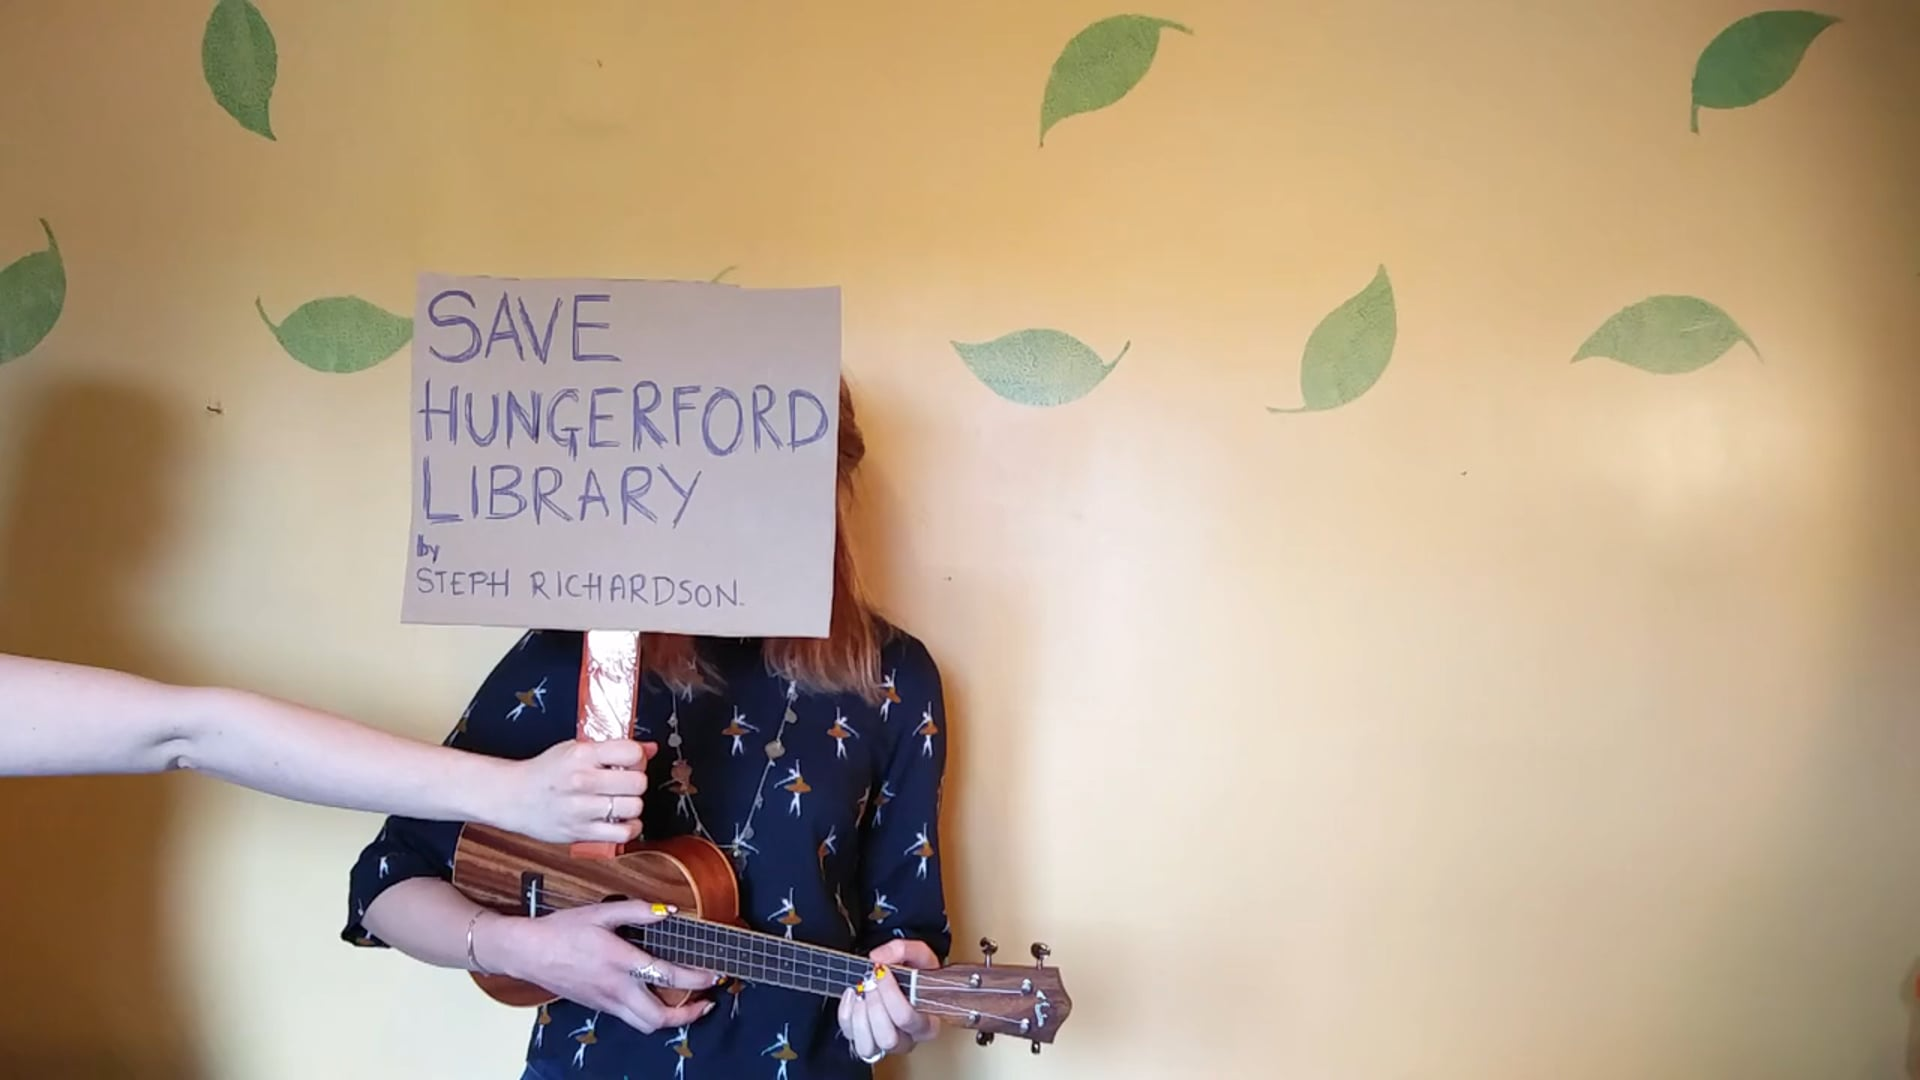 Save Hungerford Library!